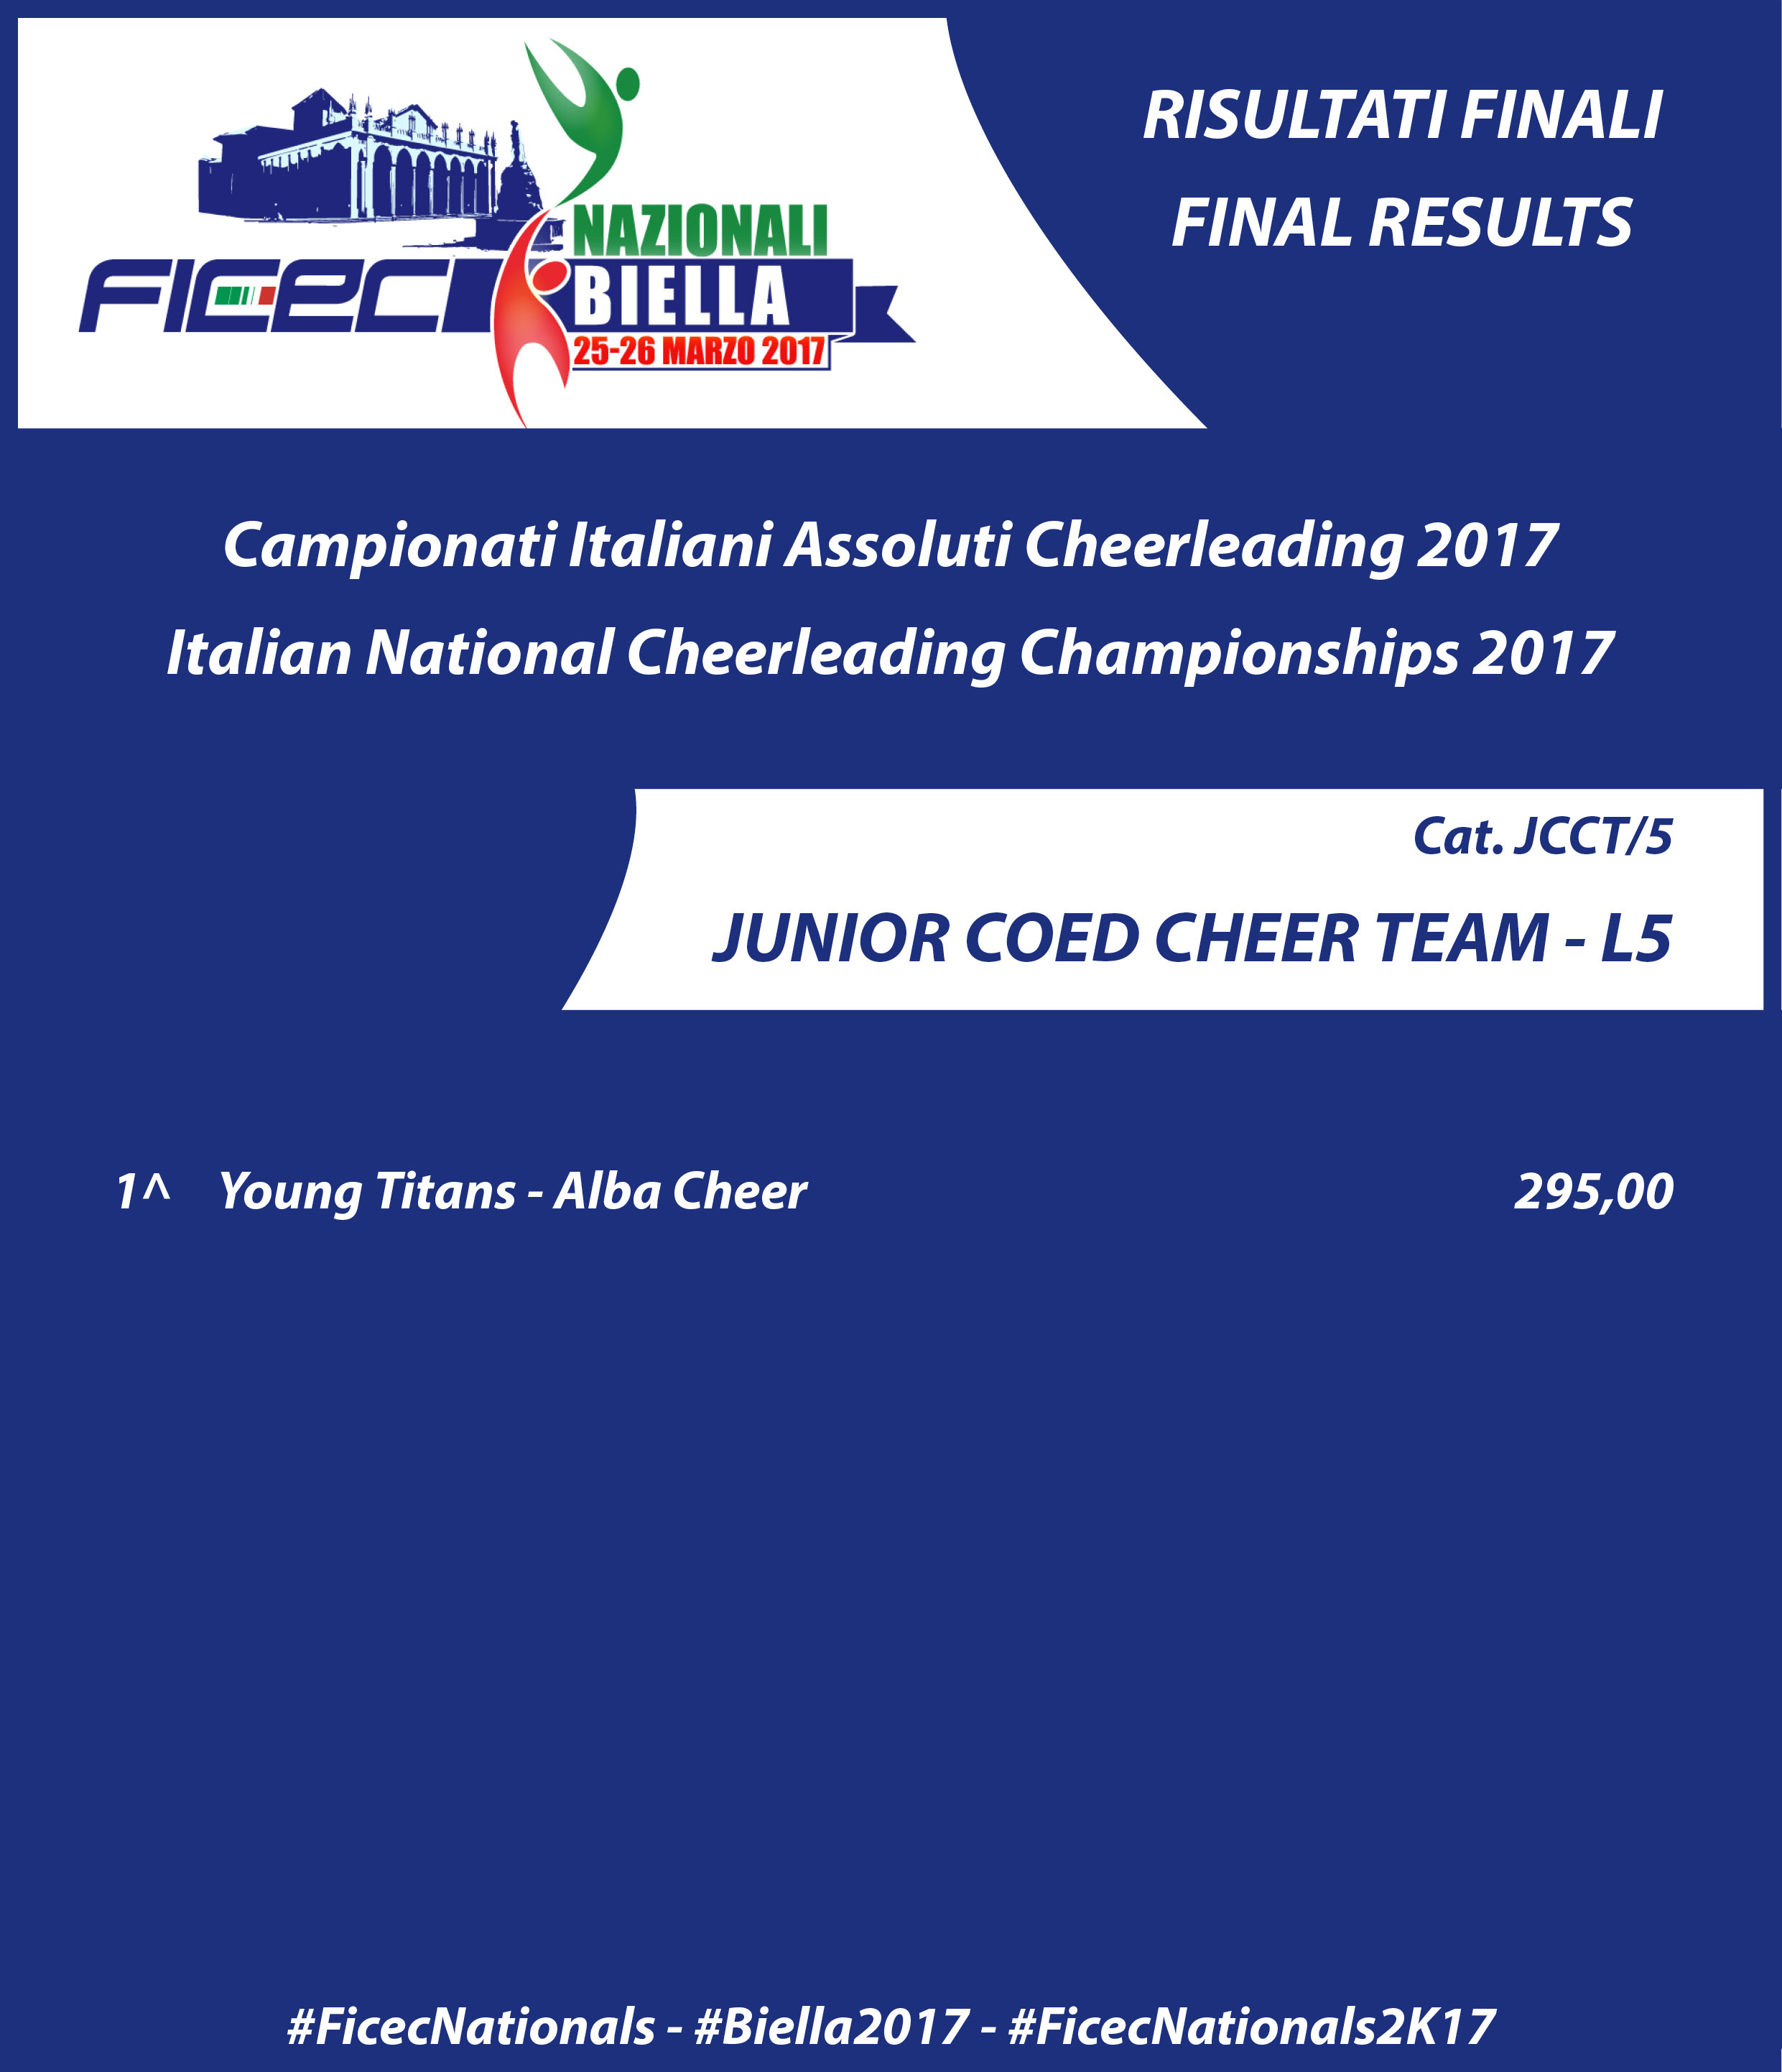 RESULTS nationals 2017 JCCT 5